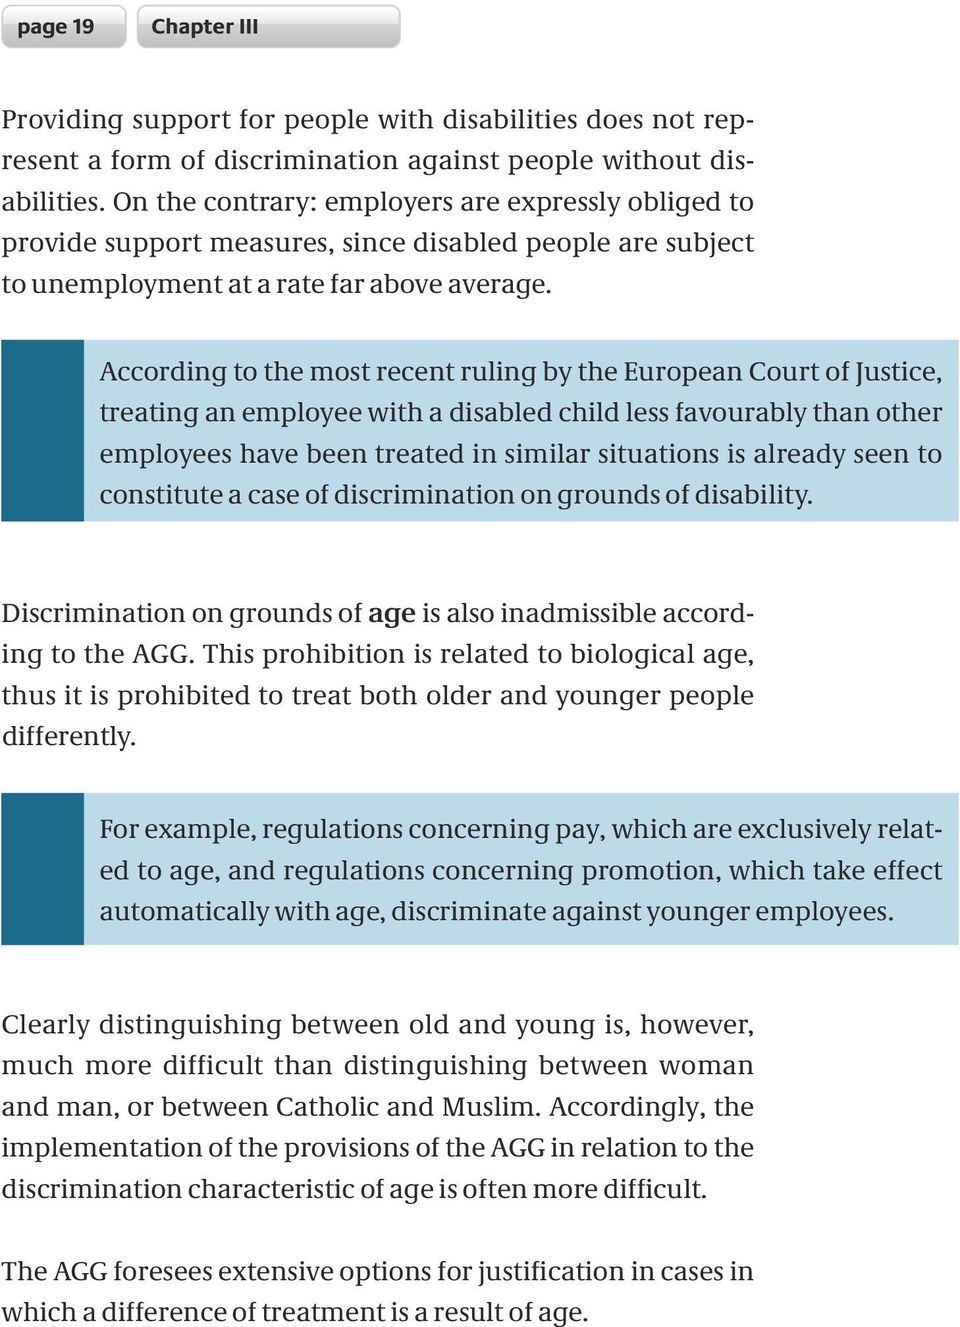 According to the most recent ruling by the European Court of Justice, treating an employee with a disabled child less favourably than other employees have been treated in similar situations is